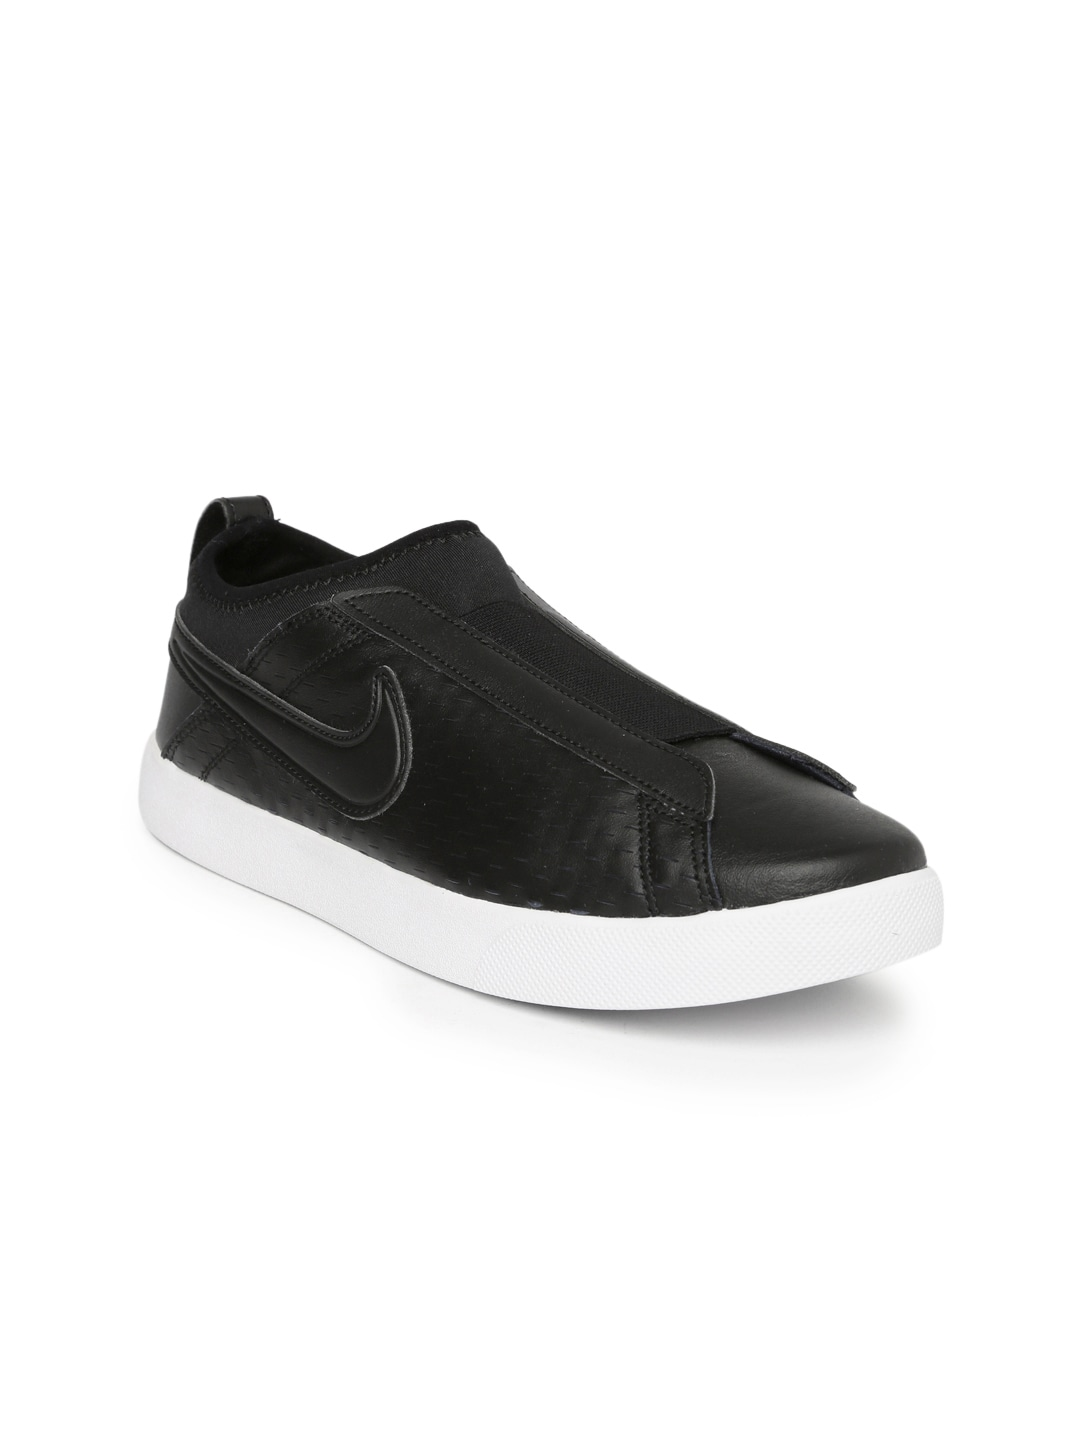 9b862aafde2eb1 Nike Slip On Shoes - Buy Nike Slip On Shoes online in India